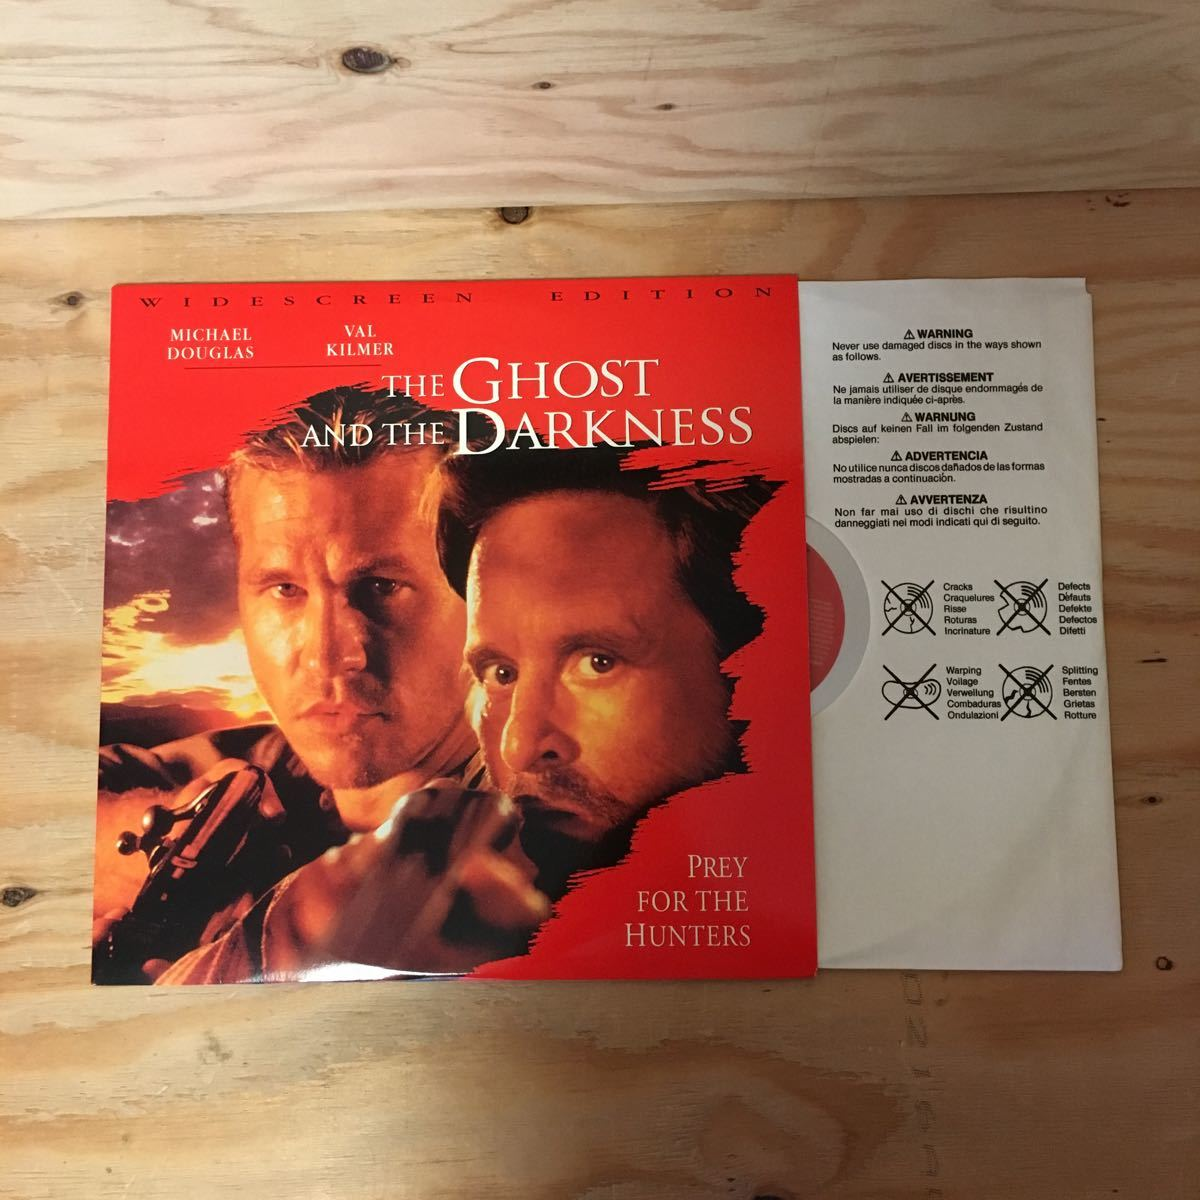 ◎Y3FIID-200303 レア[THE GHOST AND THE DARKNESS 輸入盤]LD レーザーディスク MICHAEL DOUGLAS STEPHEN HOPKINS_画像4